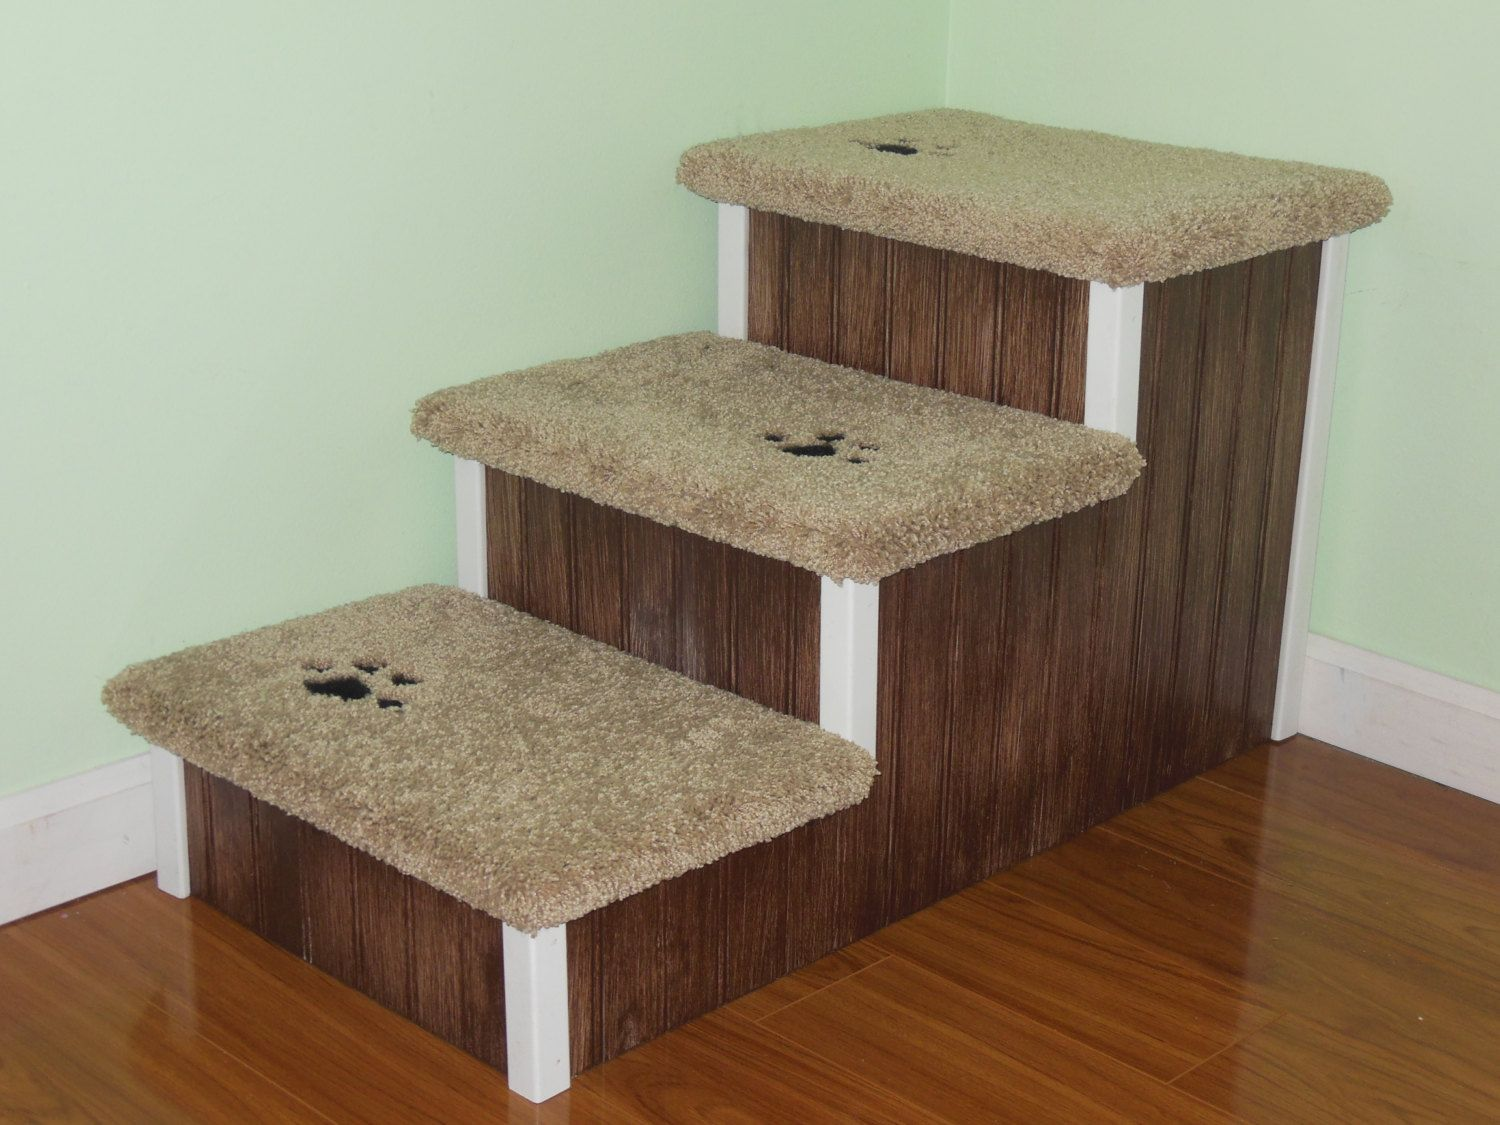 Wood Dog Steps for High Beds Dog stairs, Pet stairs, Pet